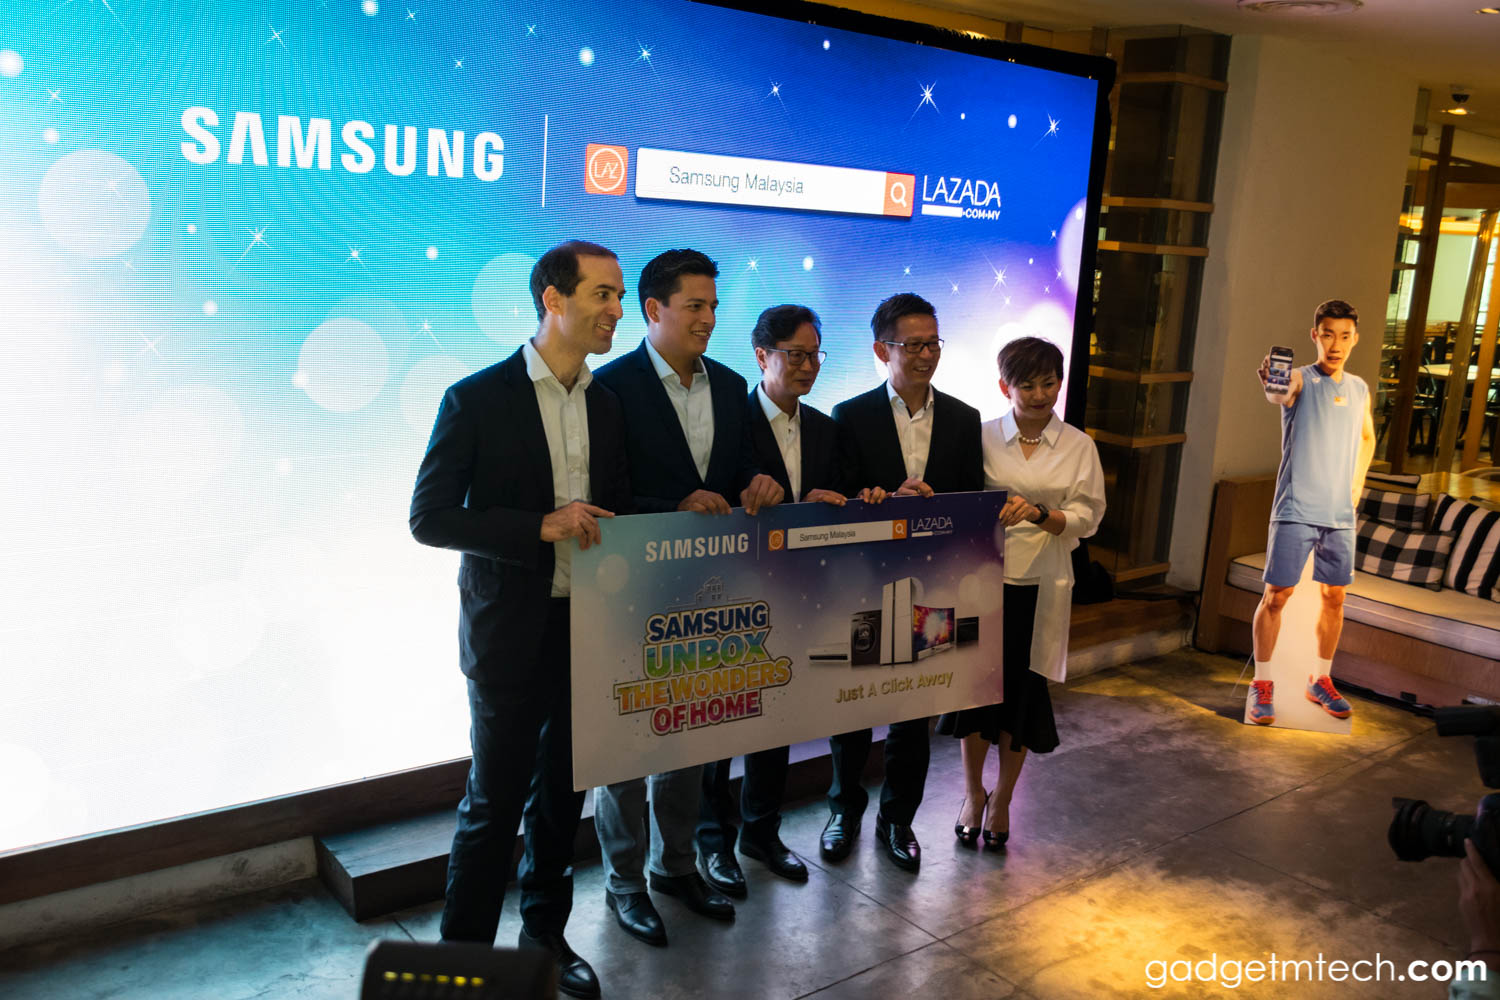 Samsung Unbox the Wonders of Home Launch